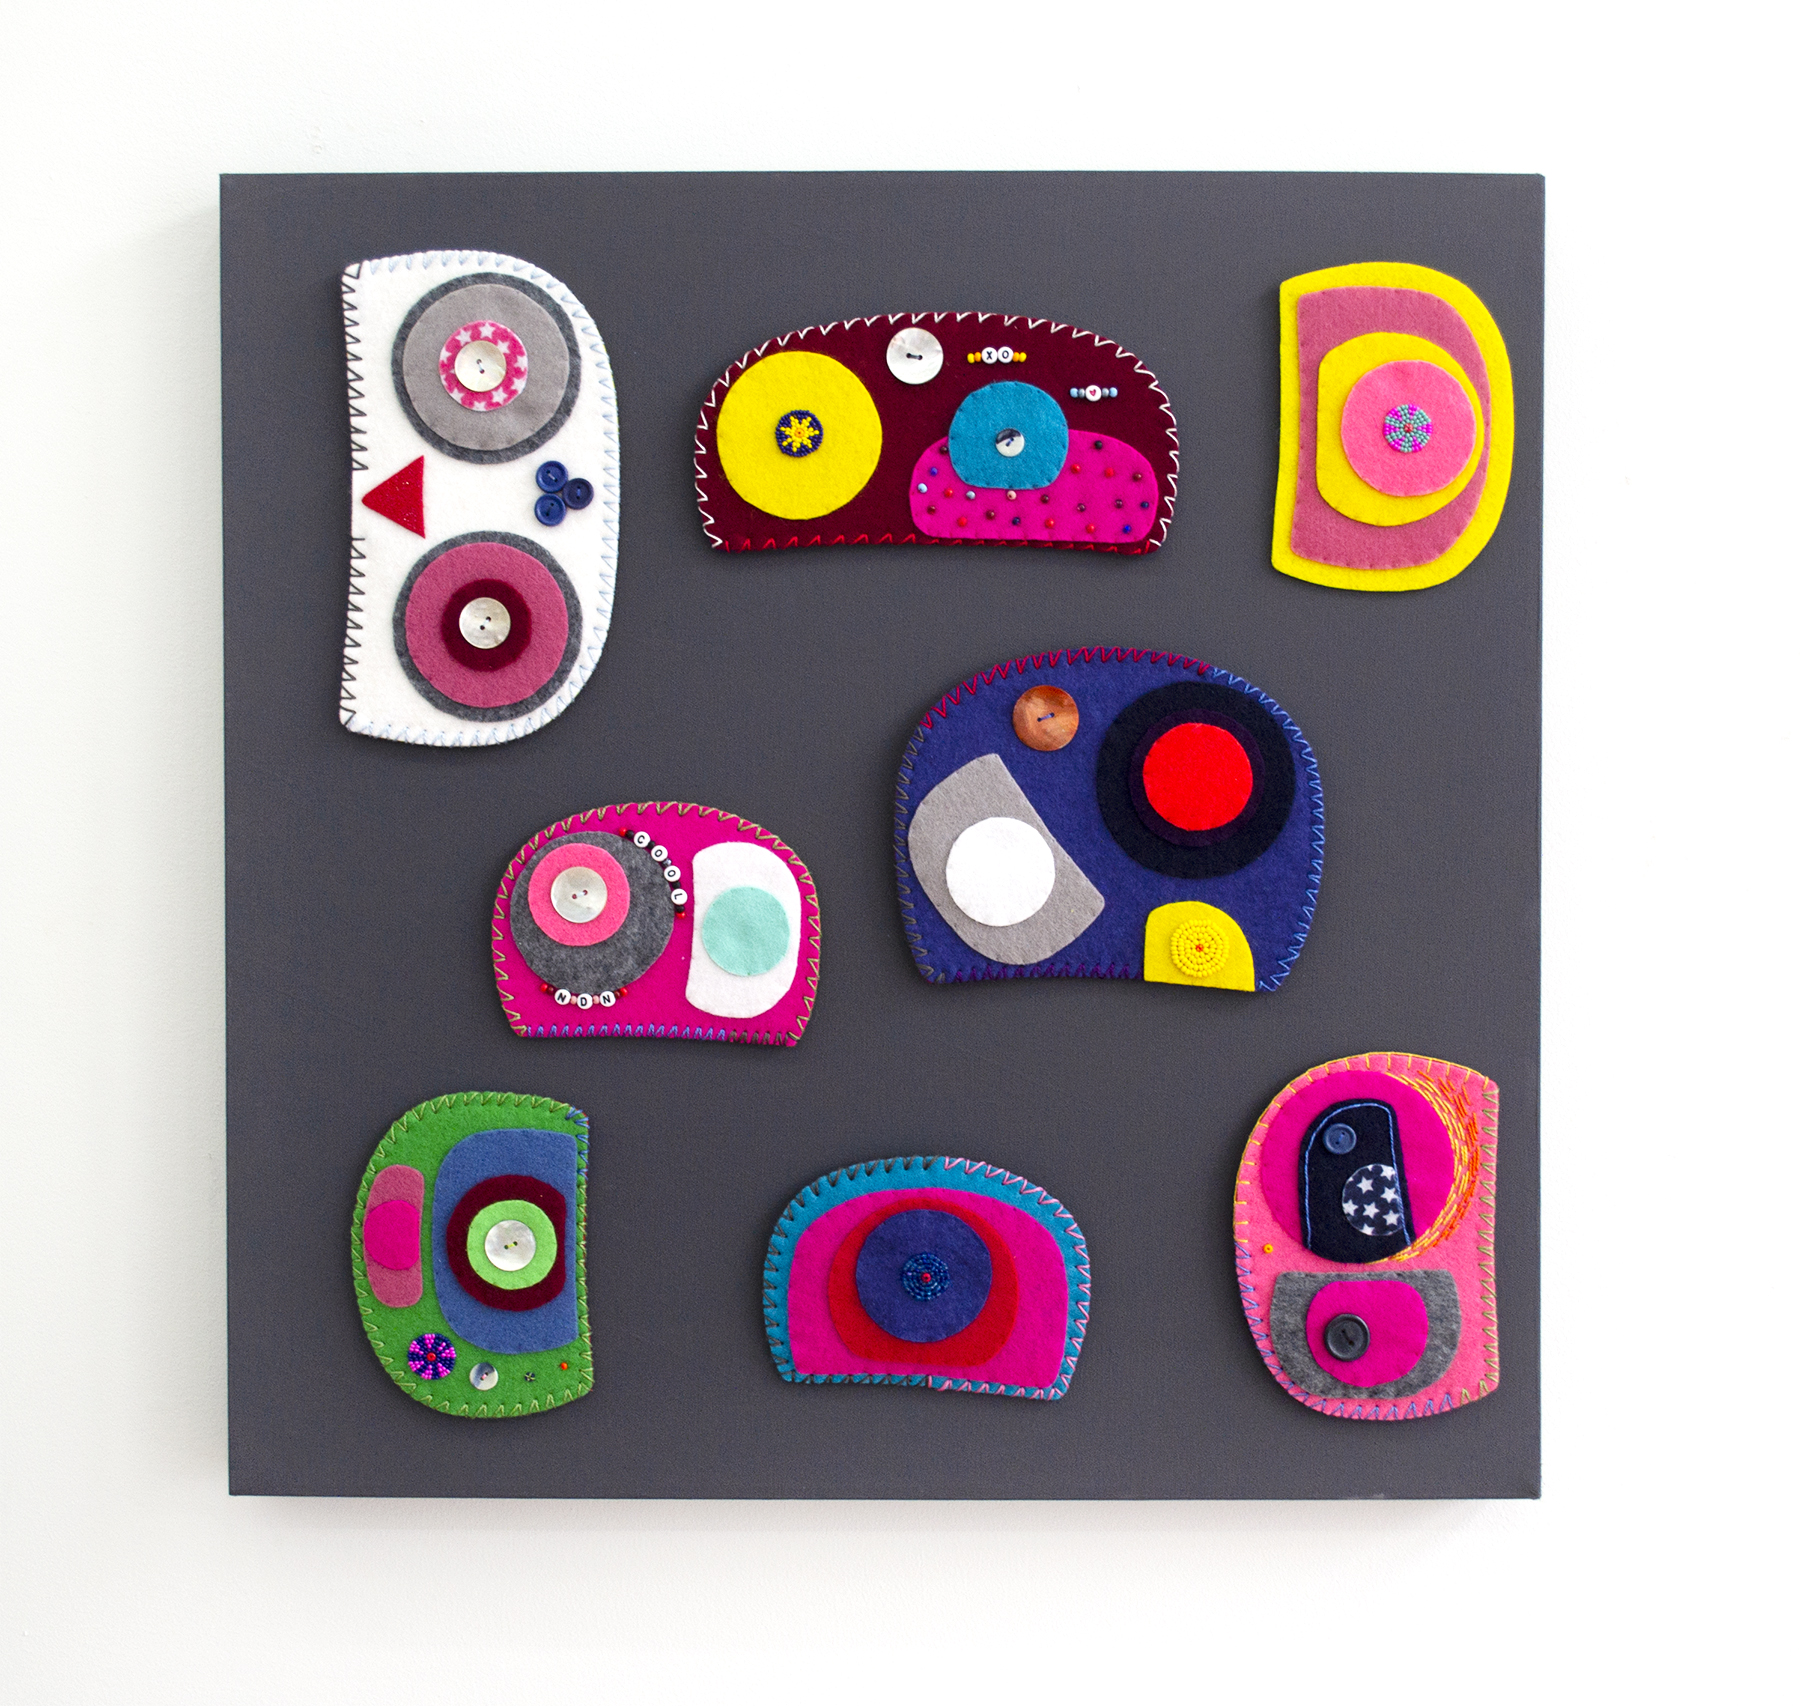 Ovoid Felts (grouping), Charlene Vickers (Anishnabe), Watercolour, paper, shell buttons, glass beads on felt with embroidery edges